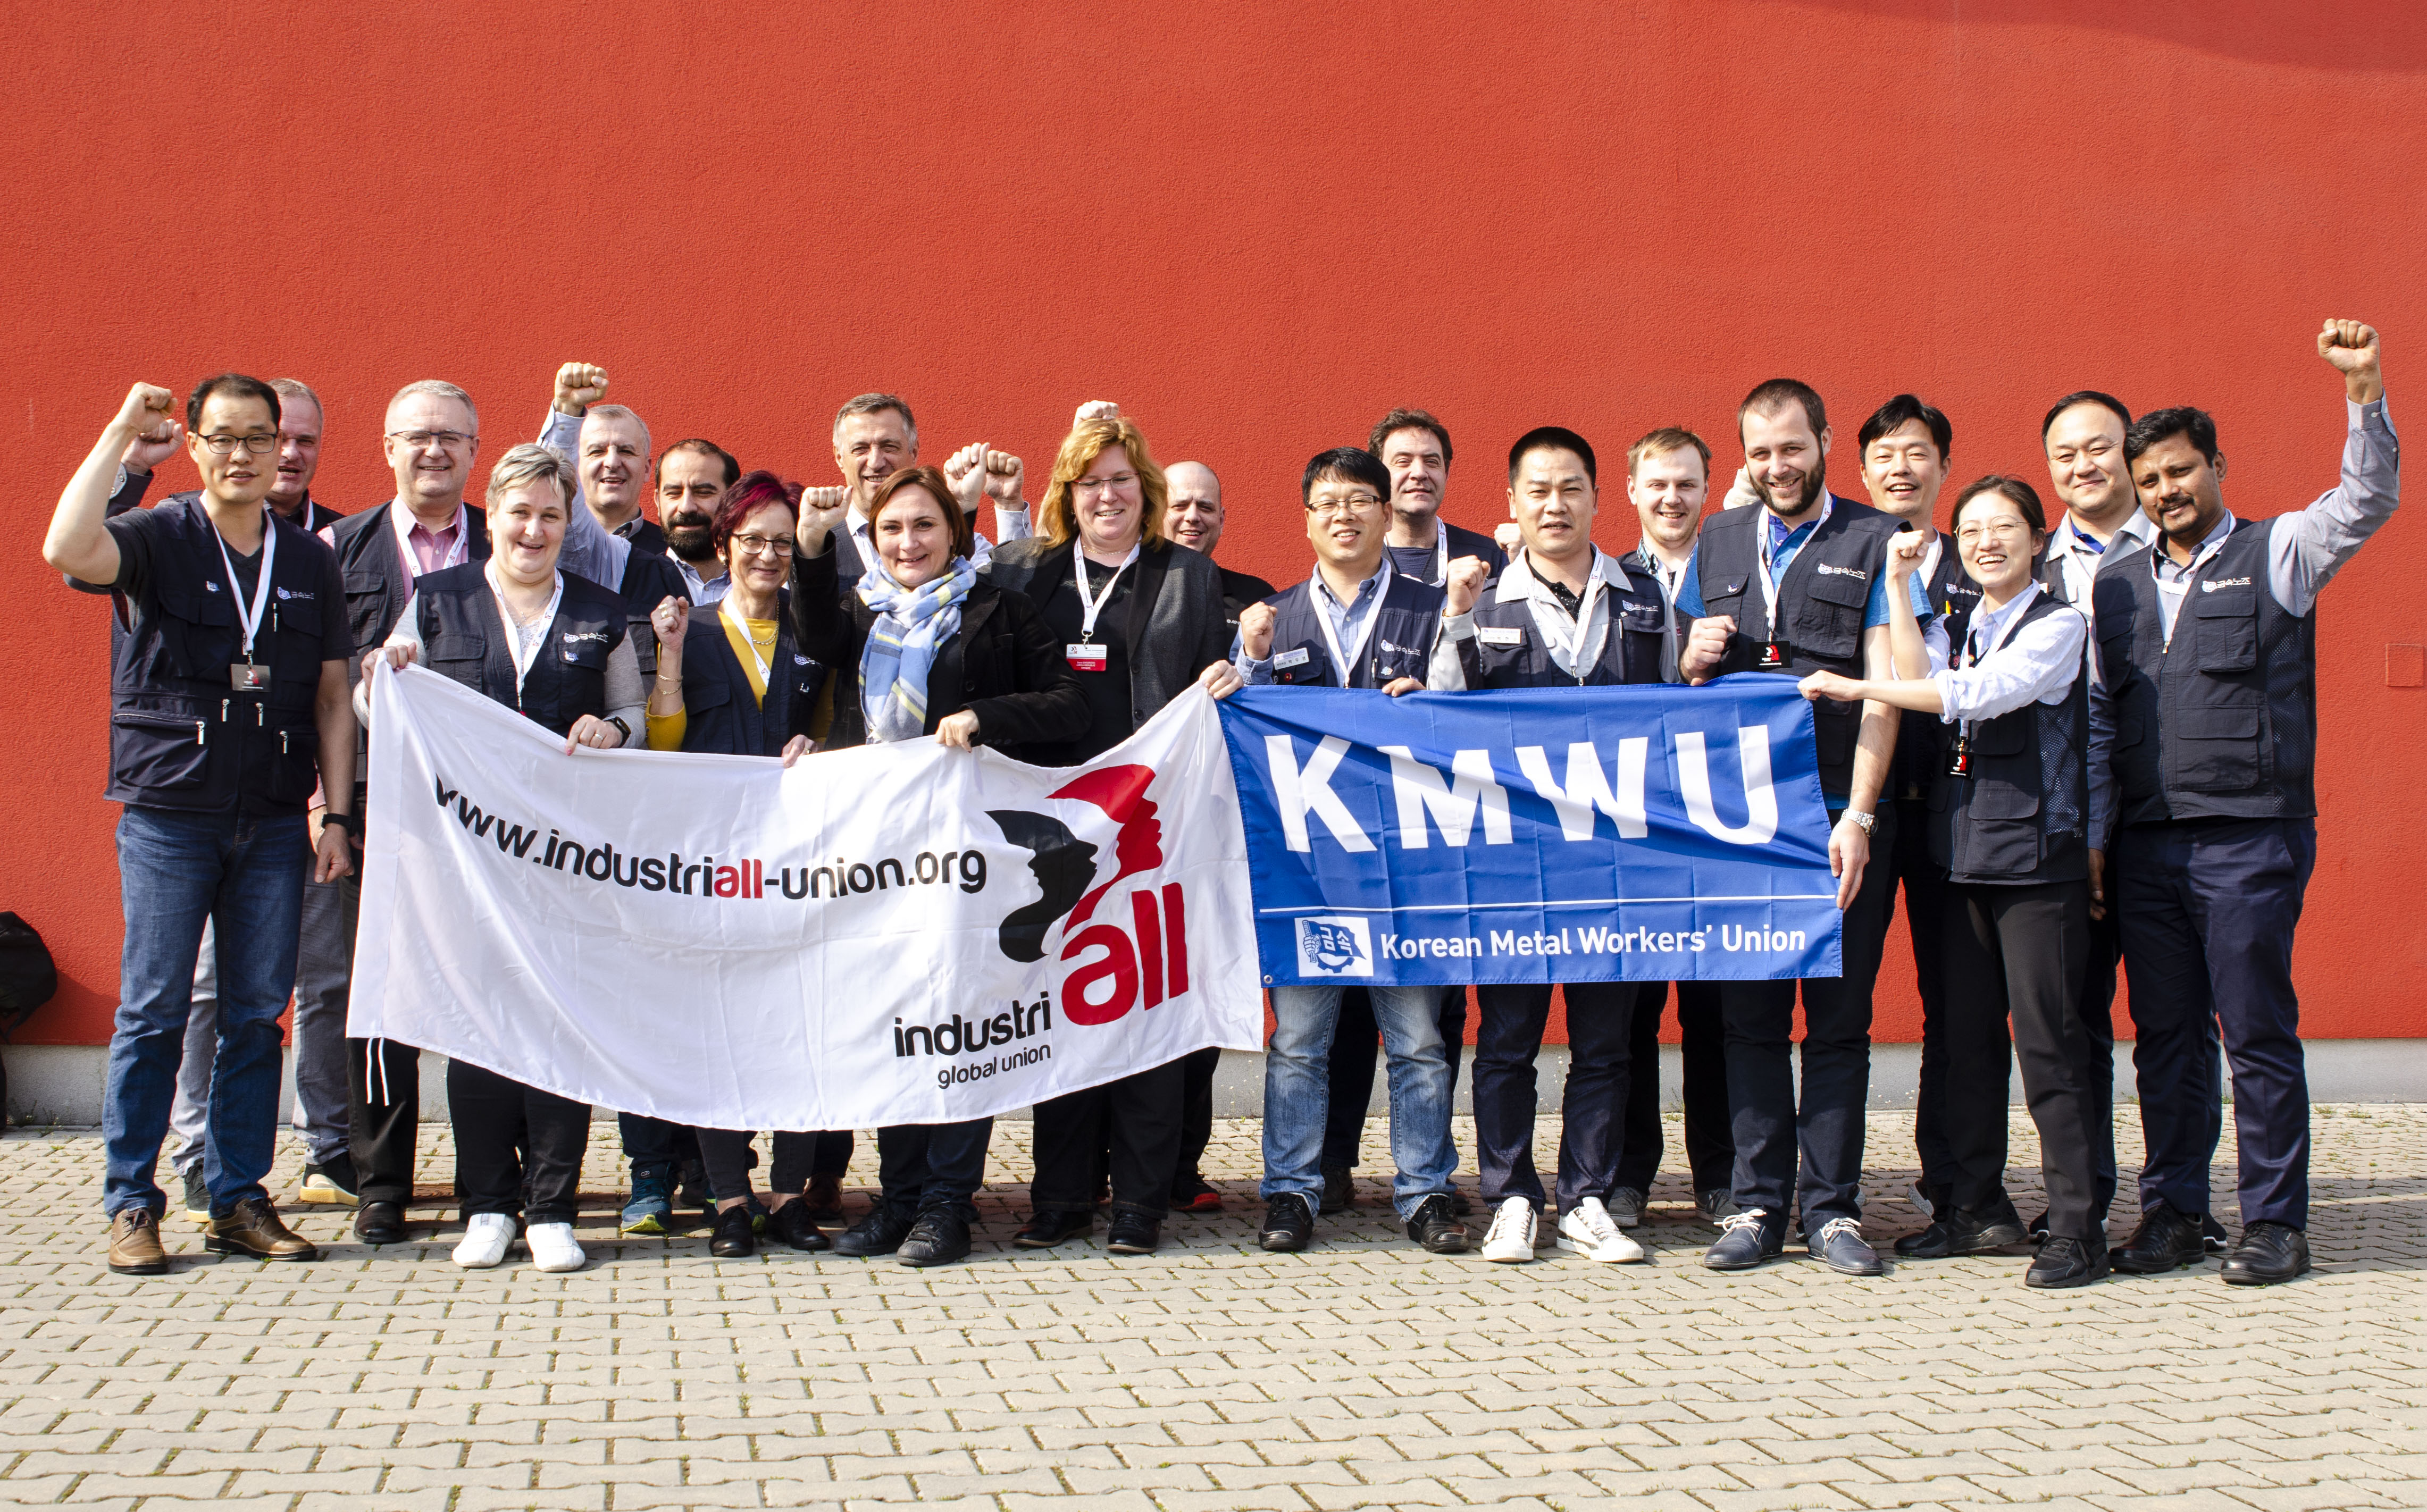 Hyundai and Kia unions call for a global framework agreement